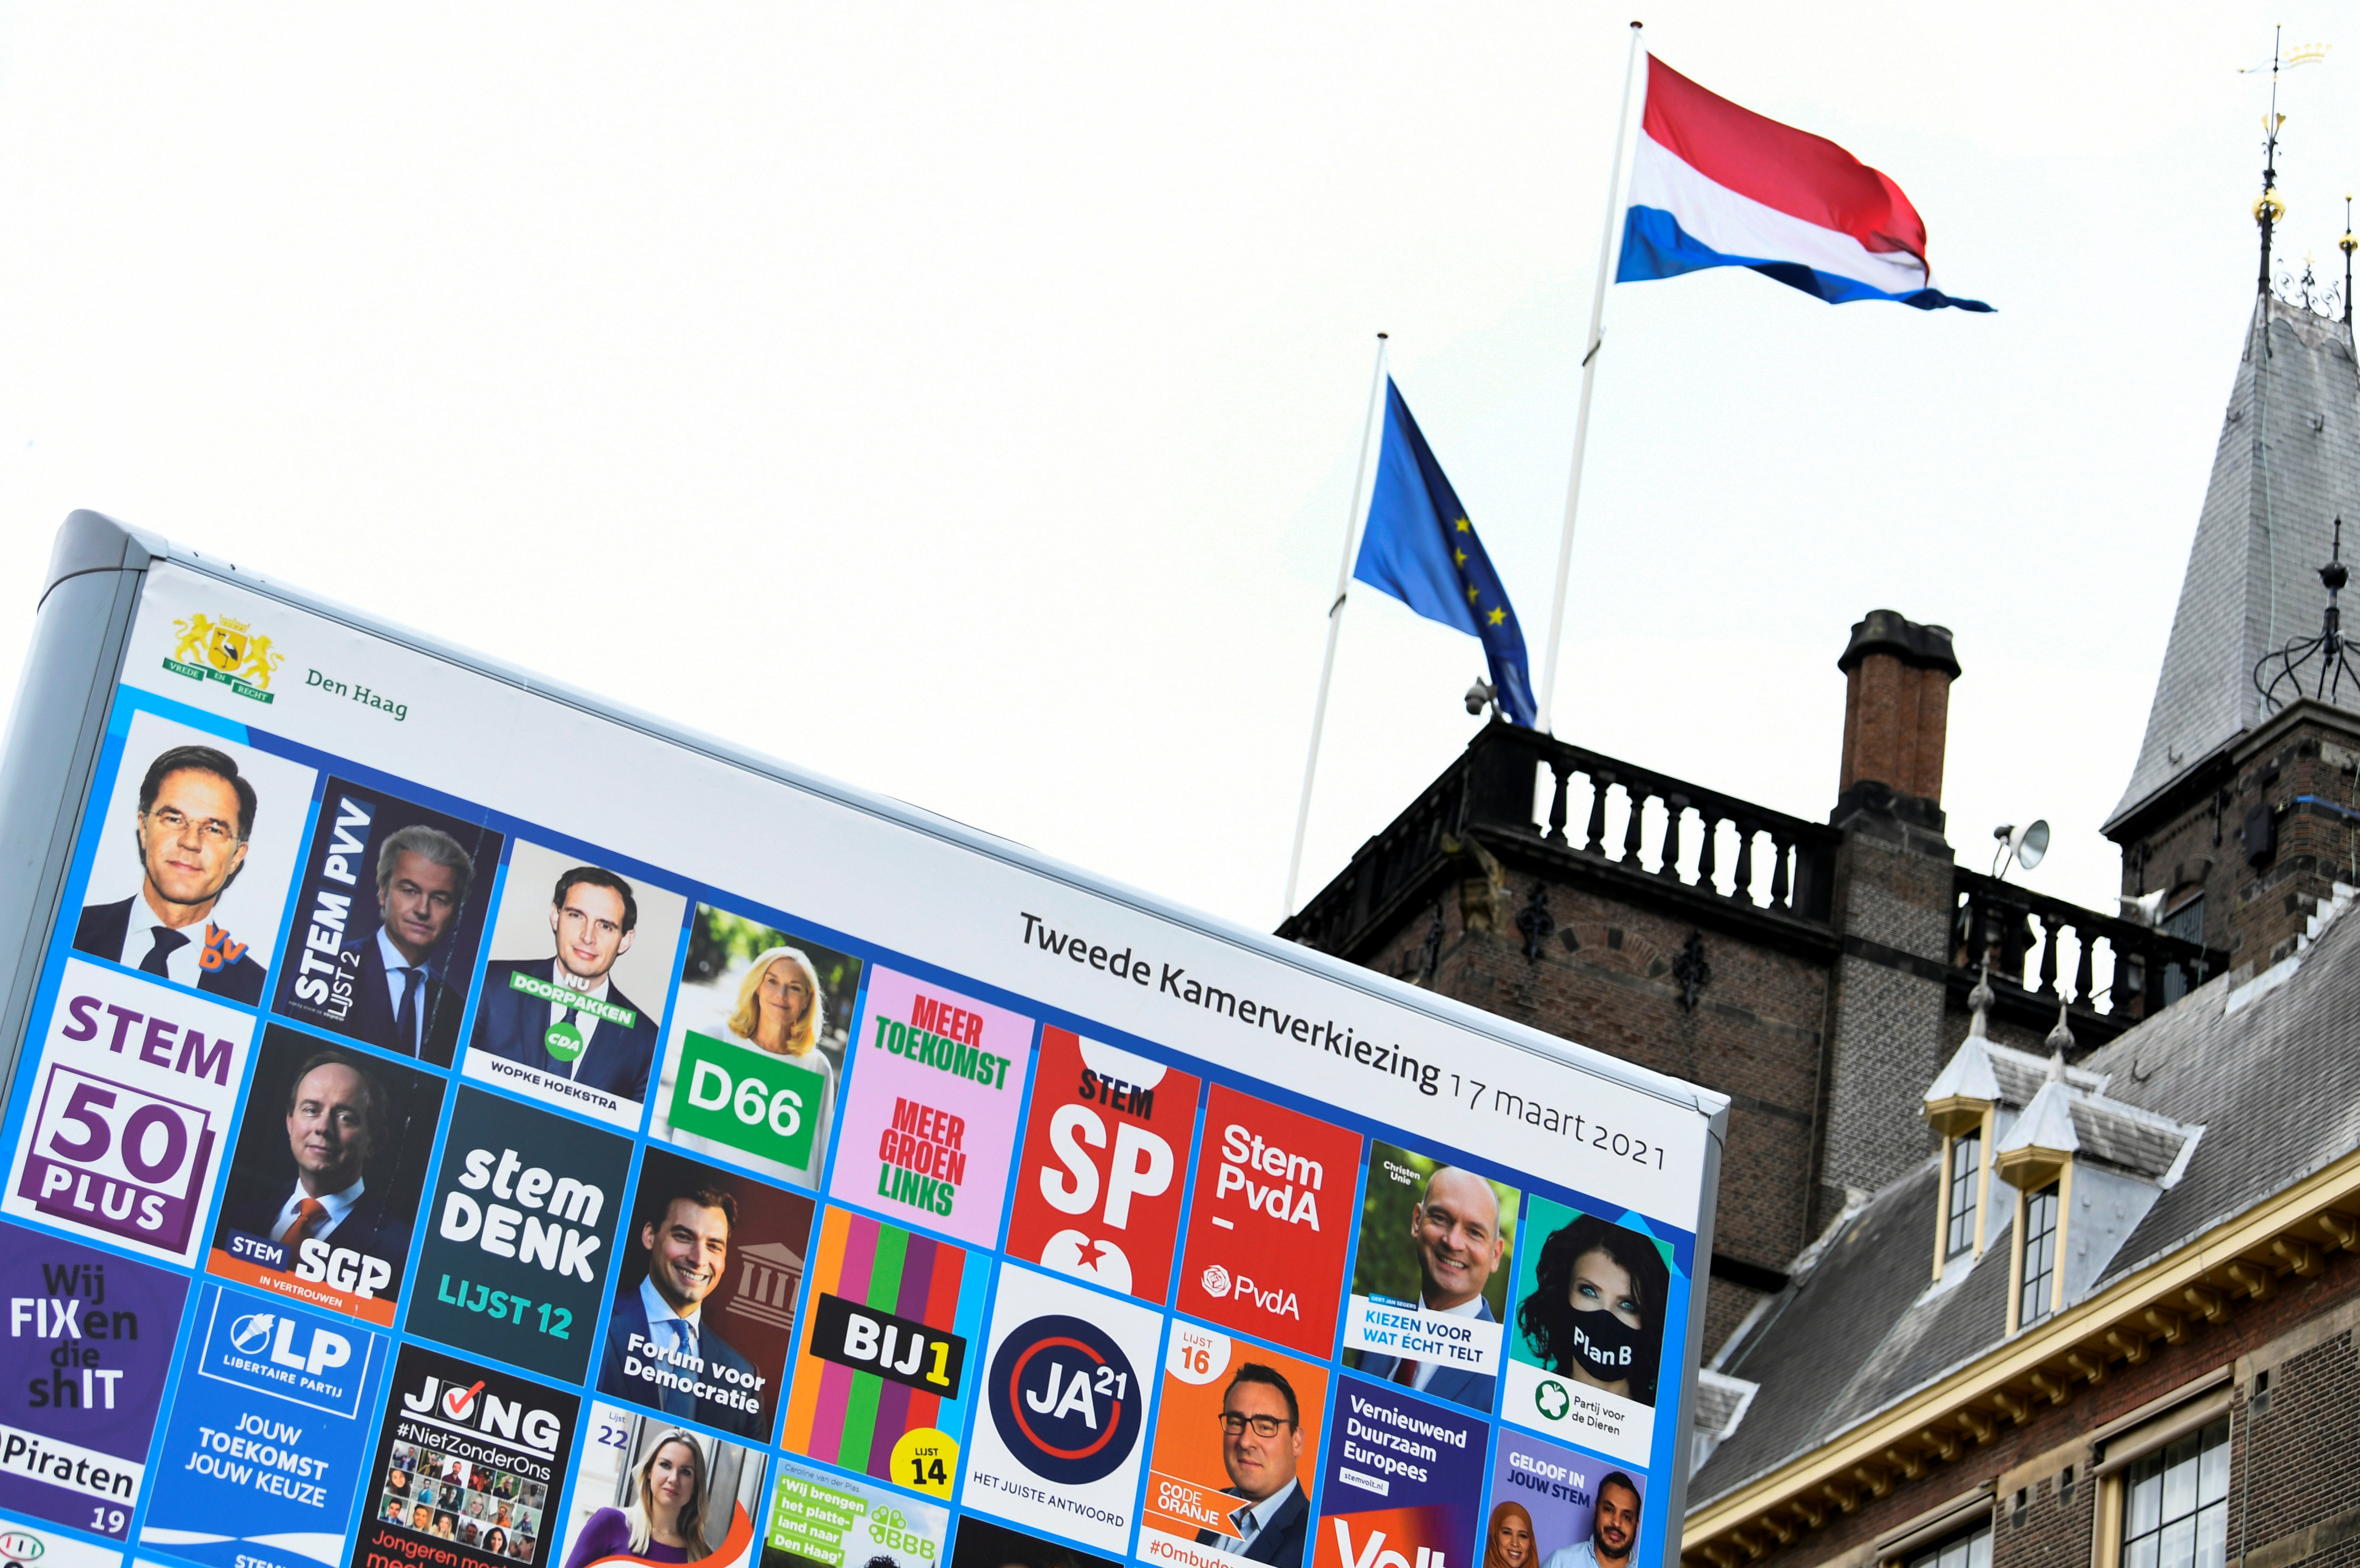 An election sign is seen at the parliament building in The Hague, Netherlands March 9, 2021. Picture taken March 9, 2021. REUTERS/Piroschka van de Wouw